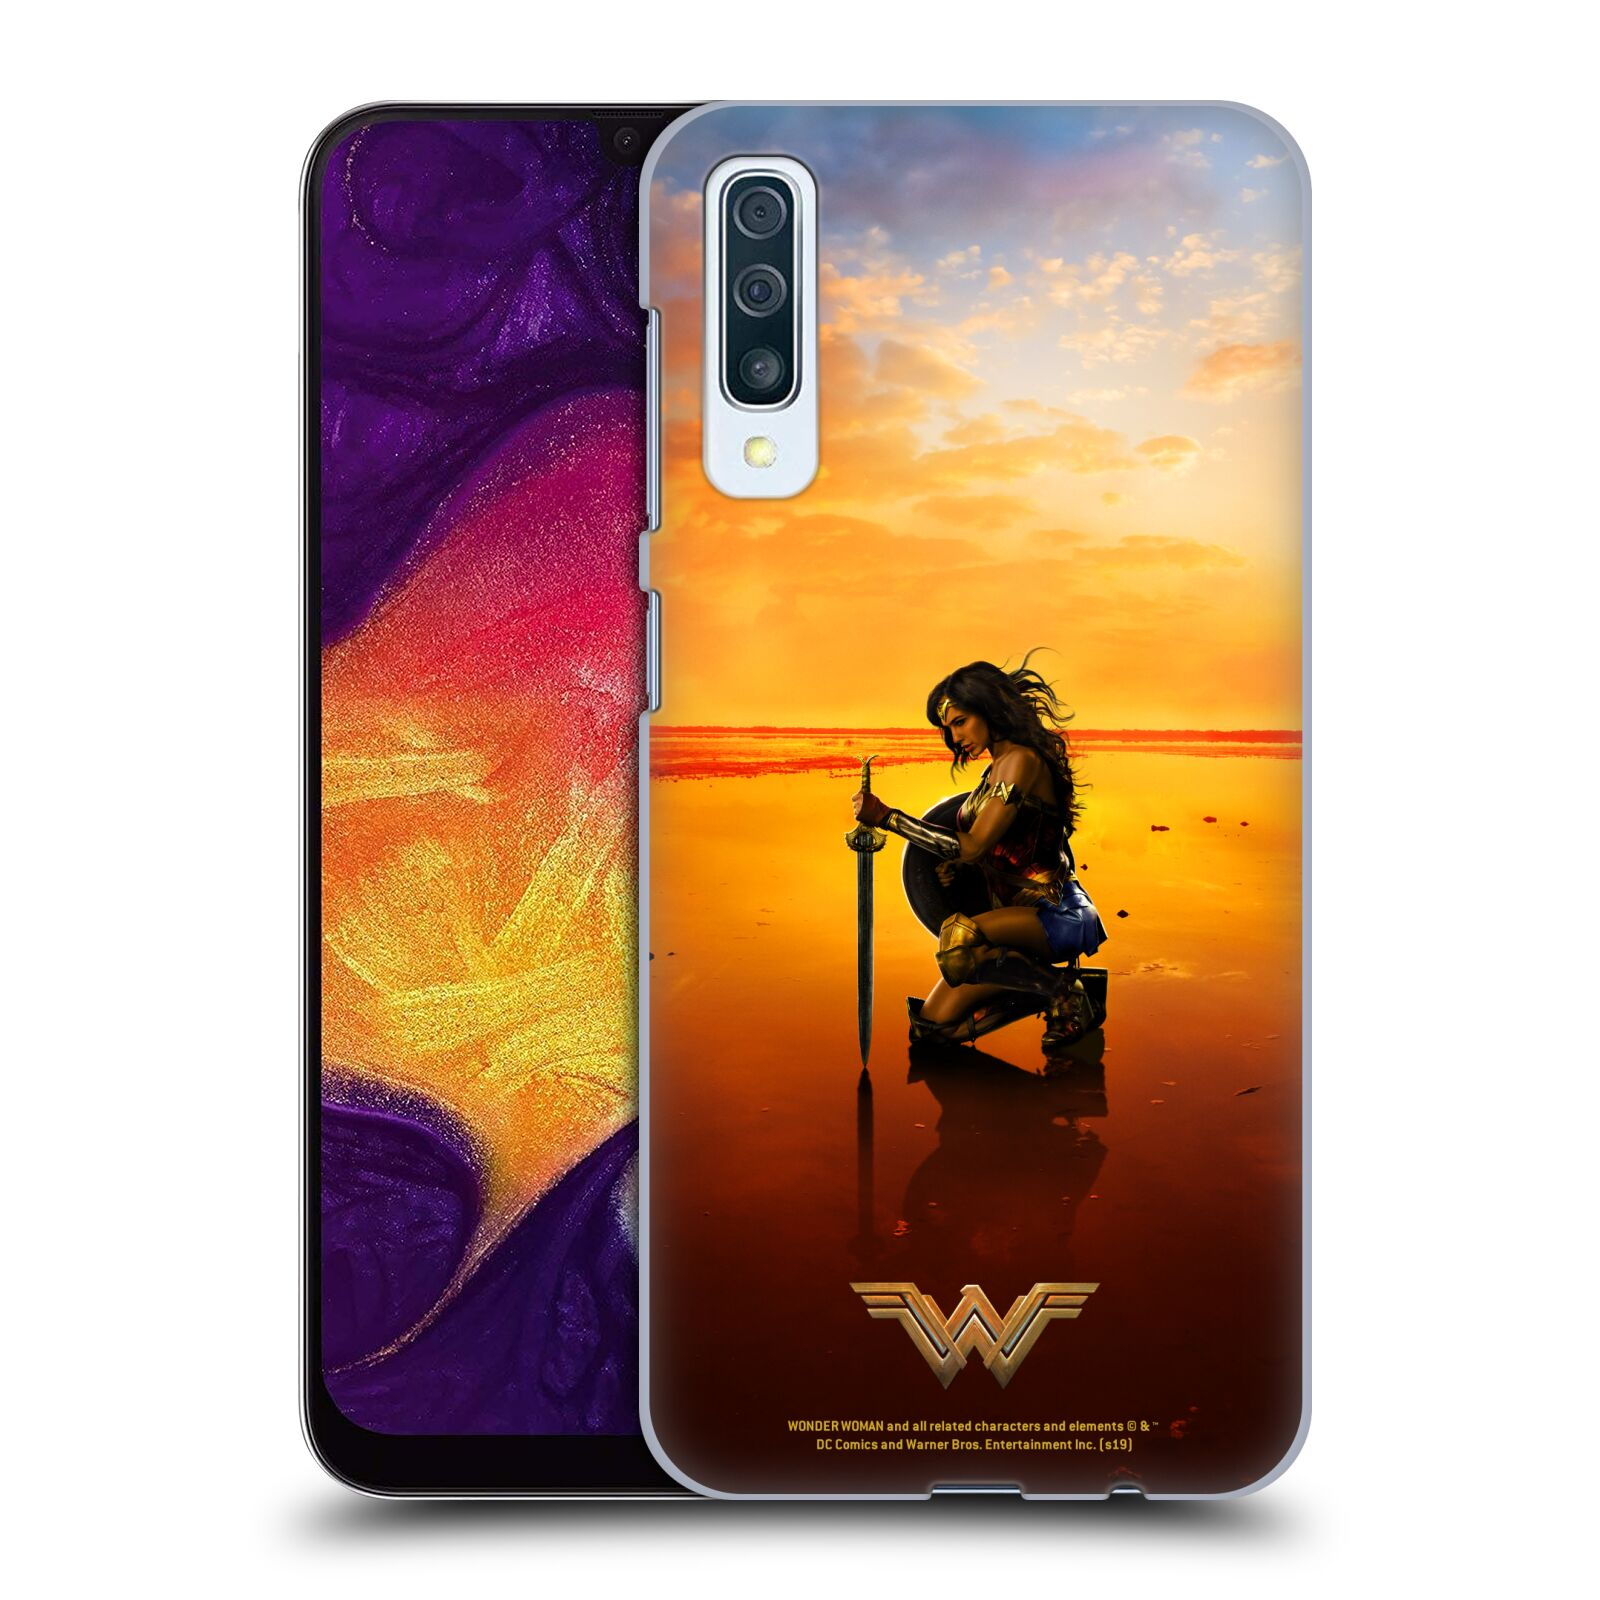 Official Wonder Woman Movie Posters Sword And Shield Case for Samsung Galaxy A50s (2019)